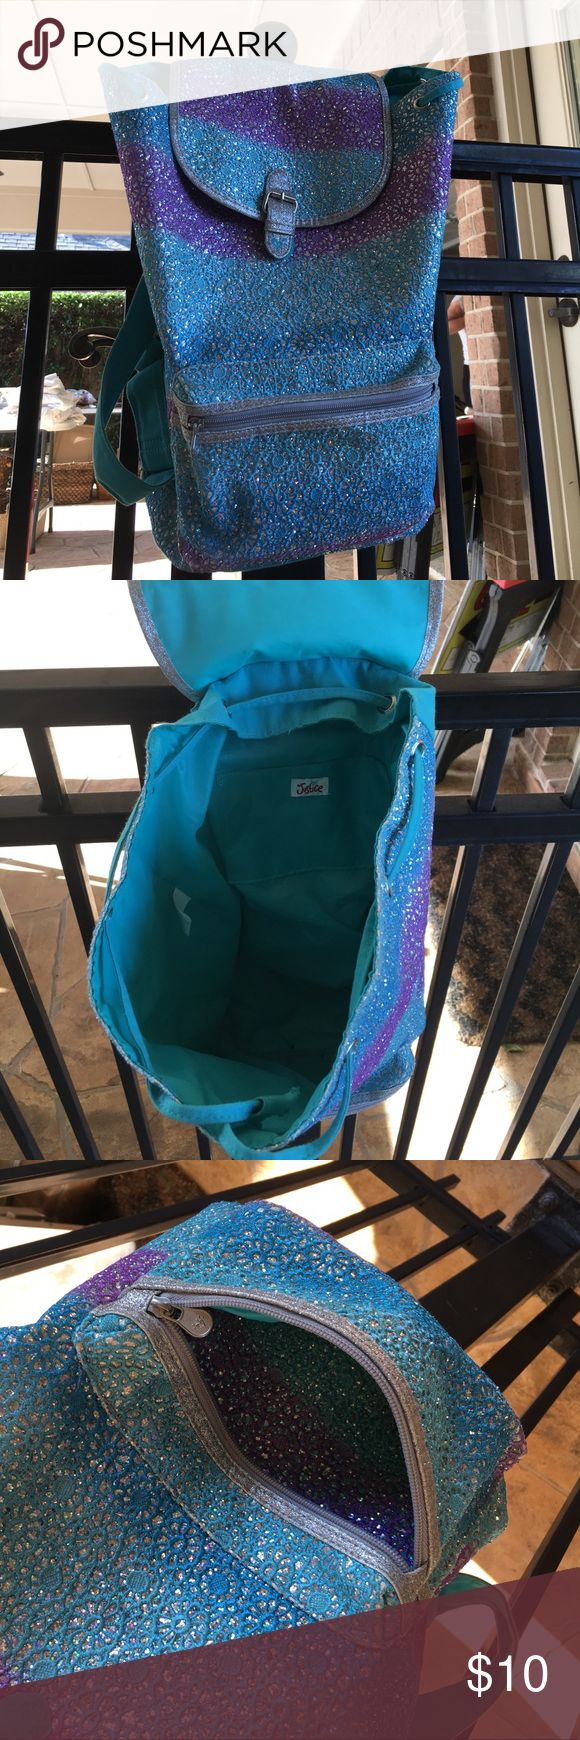 Justice backpack Girls backpack from justice. Great condition! Justice Bags Backpacks